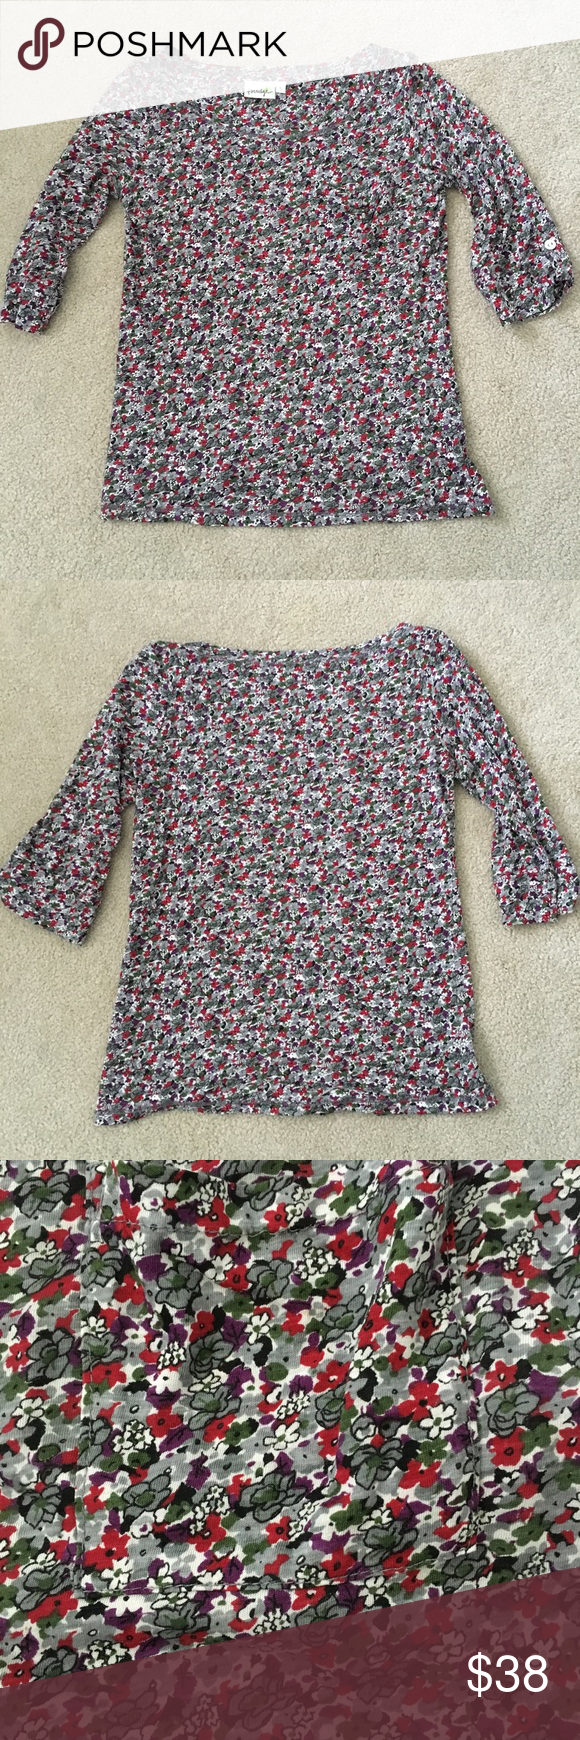 "Porridge🌺Floral 3/4 Sleeve Pocket Tee Beautiful preloved condition, no stains or marks. Pretty floral print on this super soft, supima cotton and micro modal lightweight tee. Pocket on chest. Three quarter sleeves with button tab detail. Armpit seam to seam measures 18"" across, length 23.5"". Anthropologie Tops"